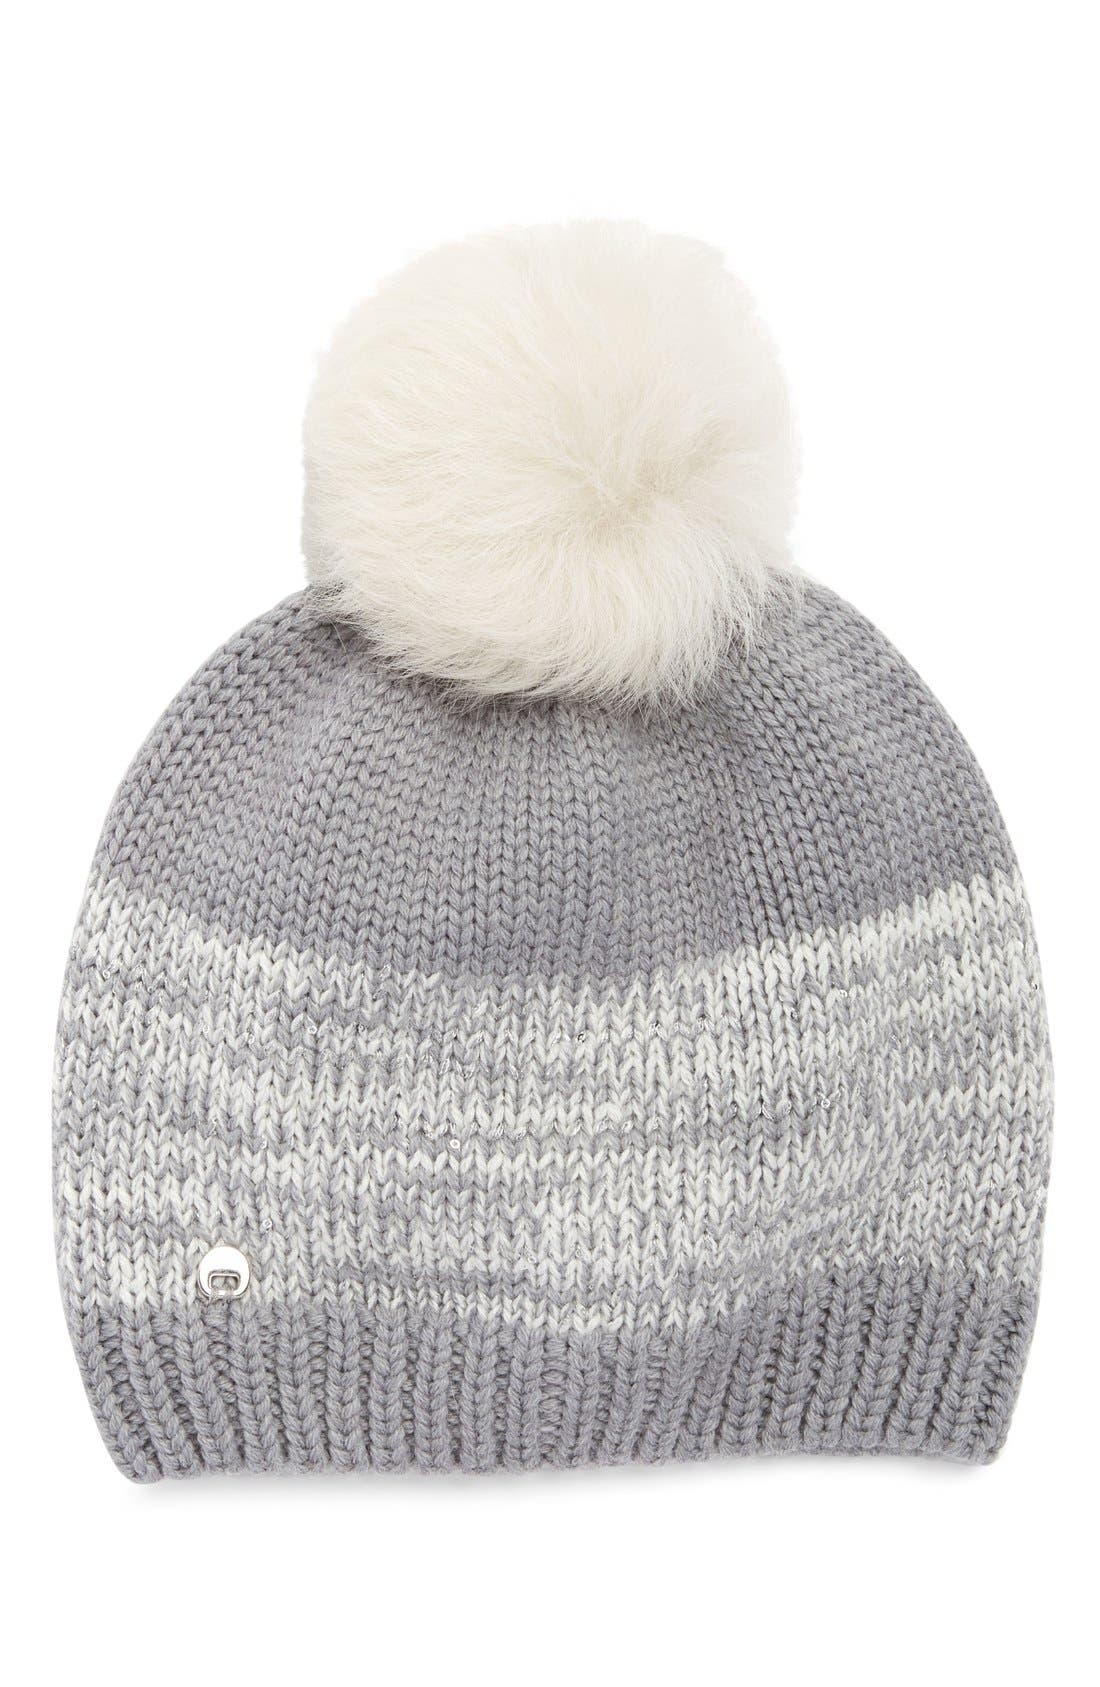 Australia Genuine Shearling Pom Marled Knit Beanie,                             Main thumbnail 1, color,                             Sand Multi